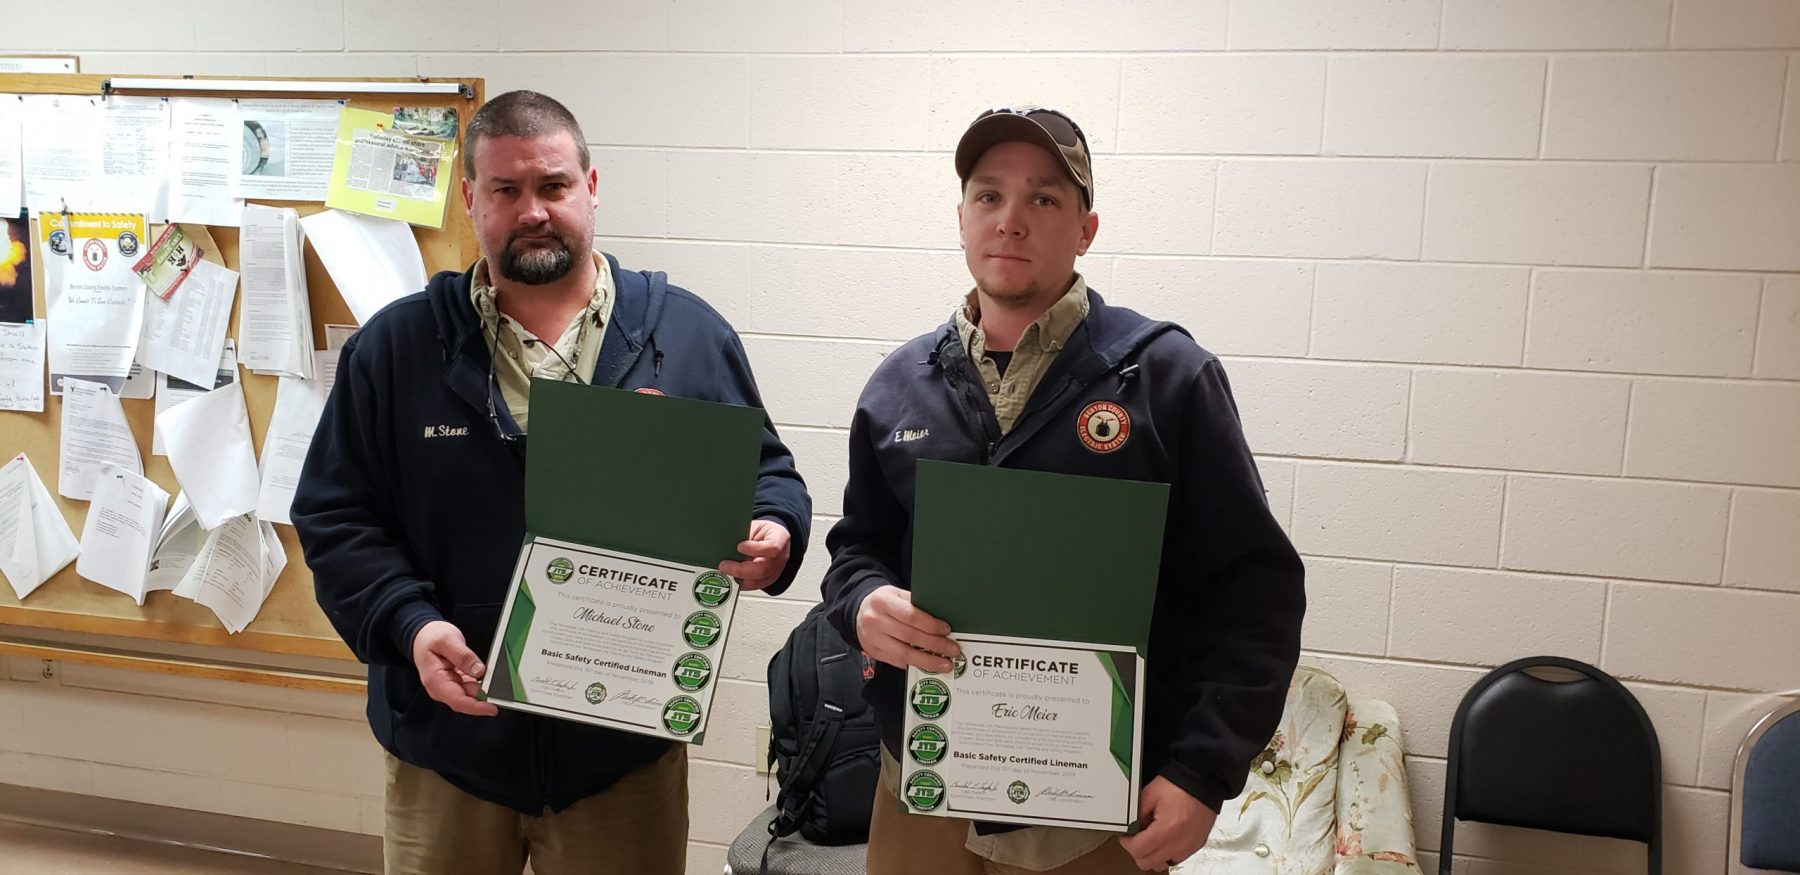 2019 Basic SCL Recipients Michael Stone and Eric Meier from Benton County Electric System